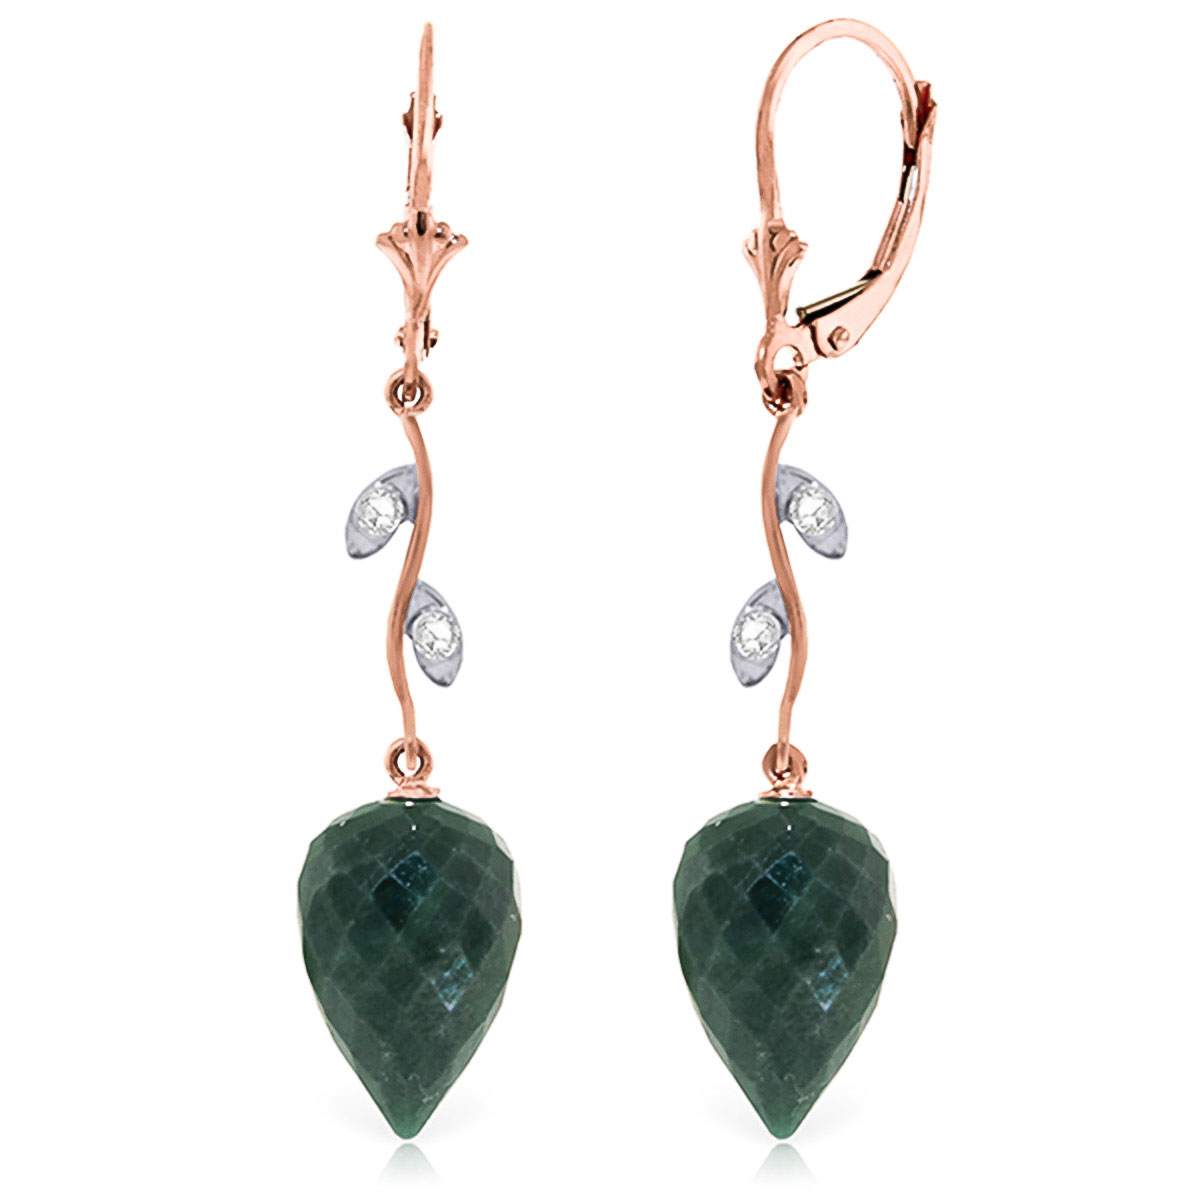 Image of Emerald Drop Earrings 25.72 ctw in 9ct Rose Gold